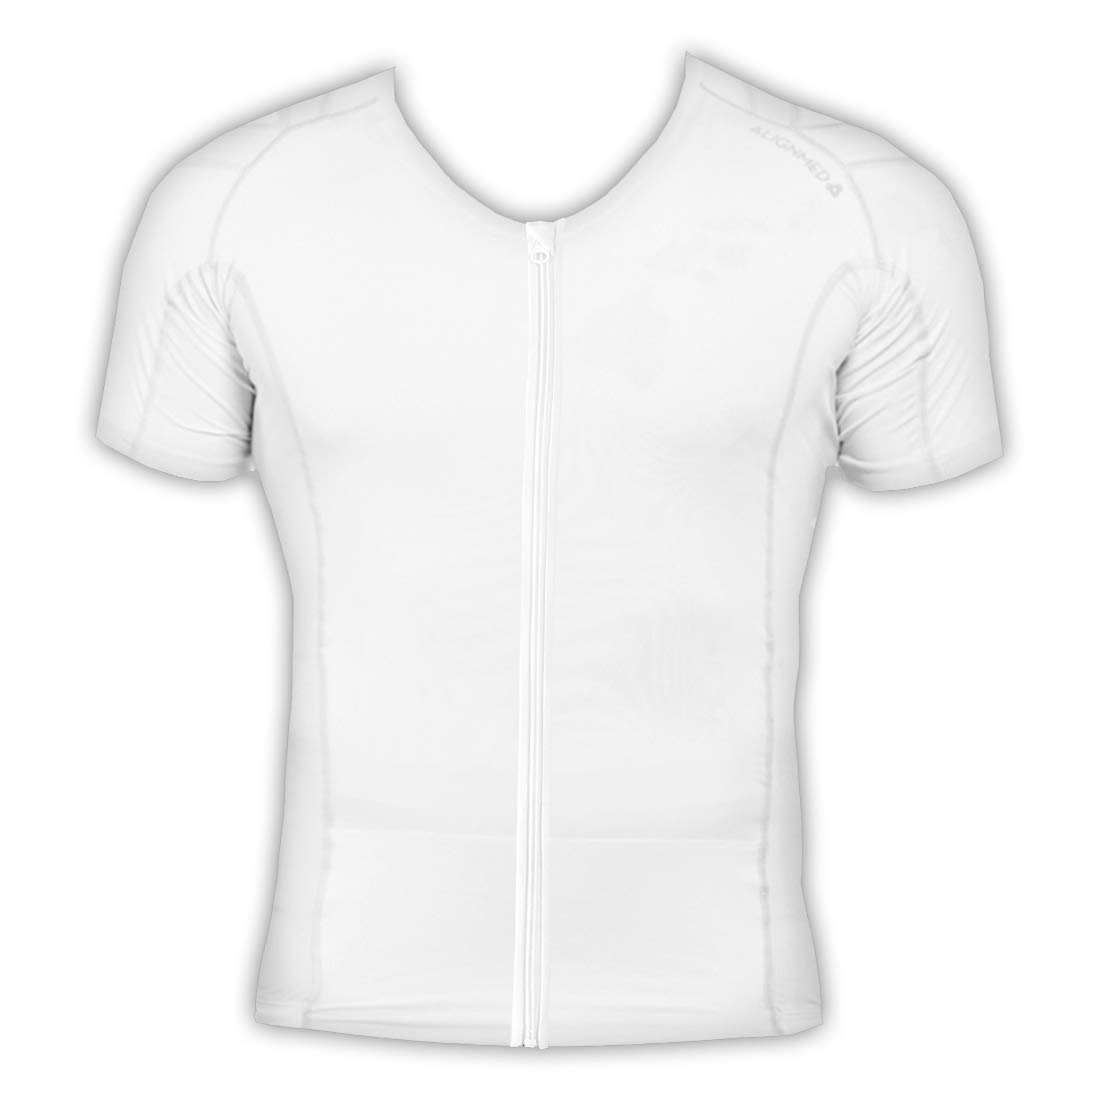 White XSmall ALIGNMED Posture Shirt  Mens Zipper Shirt, Posture Support, Compression, Breathable